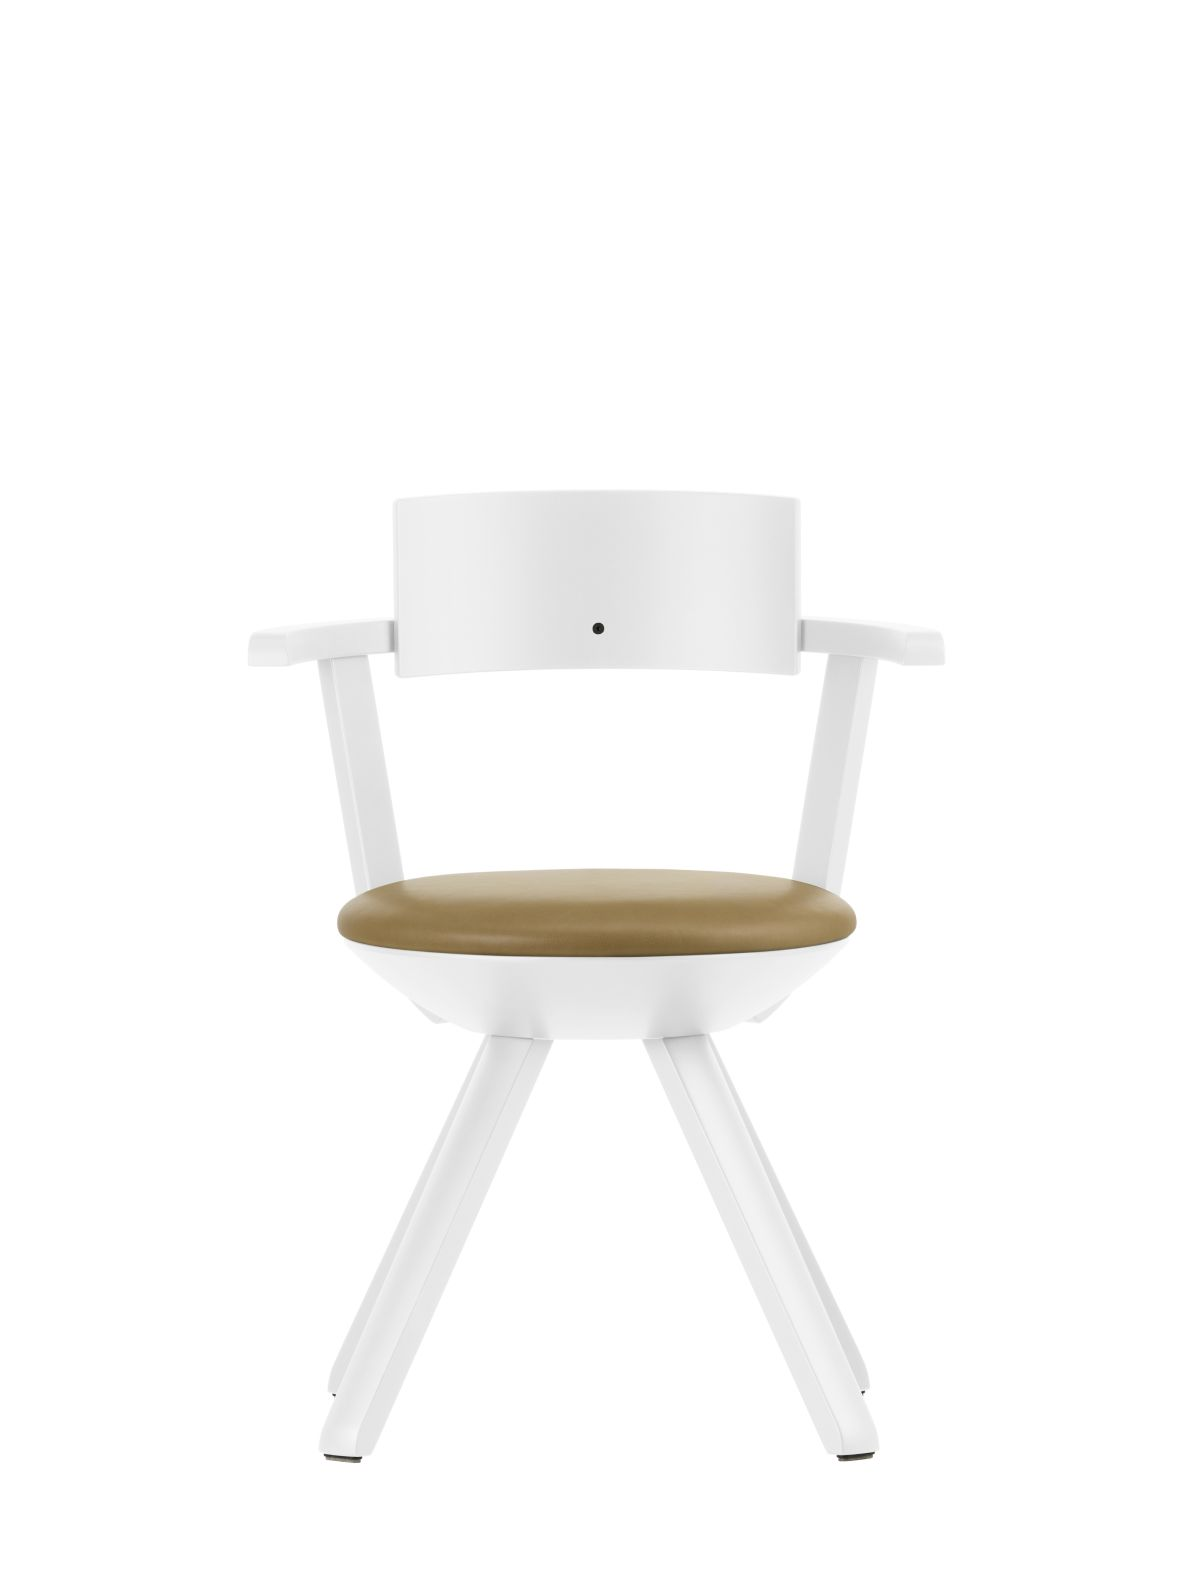 Rival-Chair-Kg002-White-Lacquer-Caramel-Leather-Upholstery